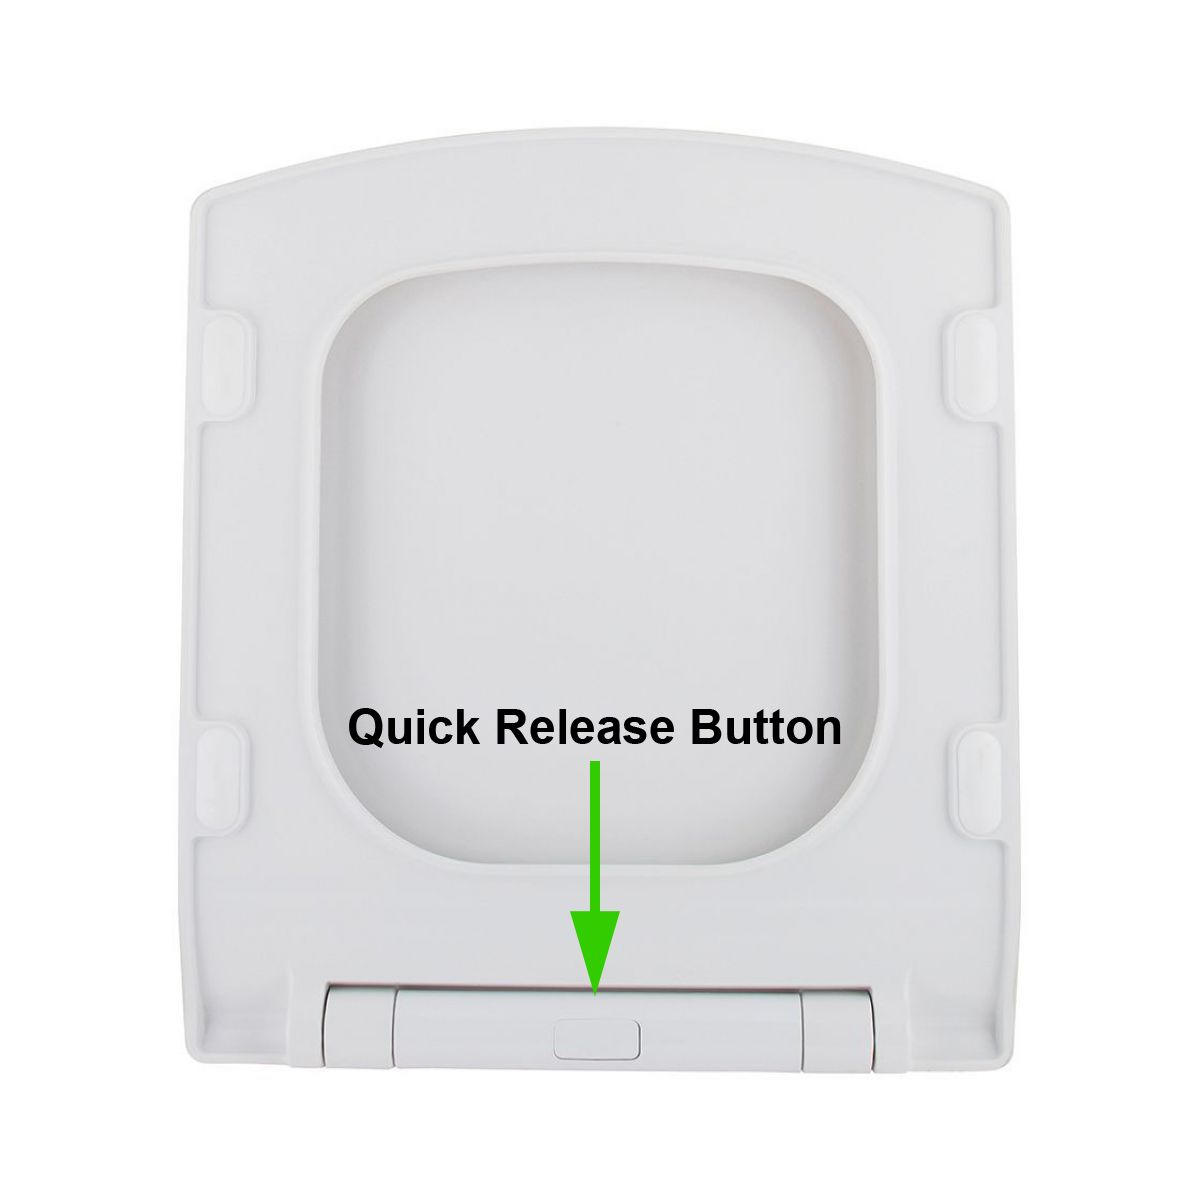 Quick Release Toilet Seat Button